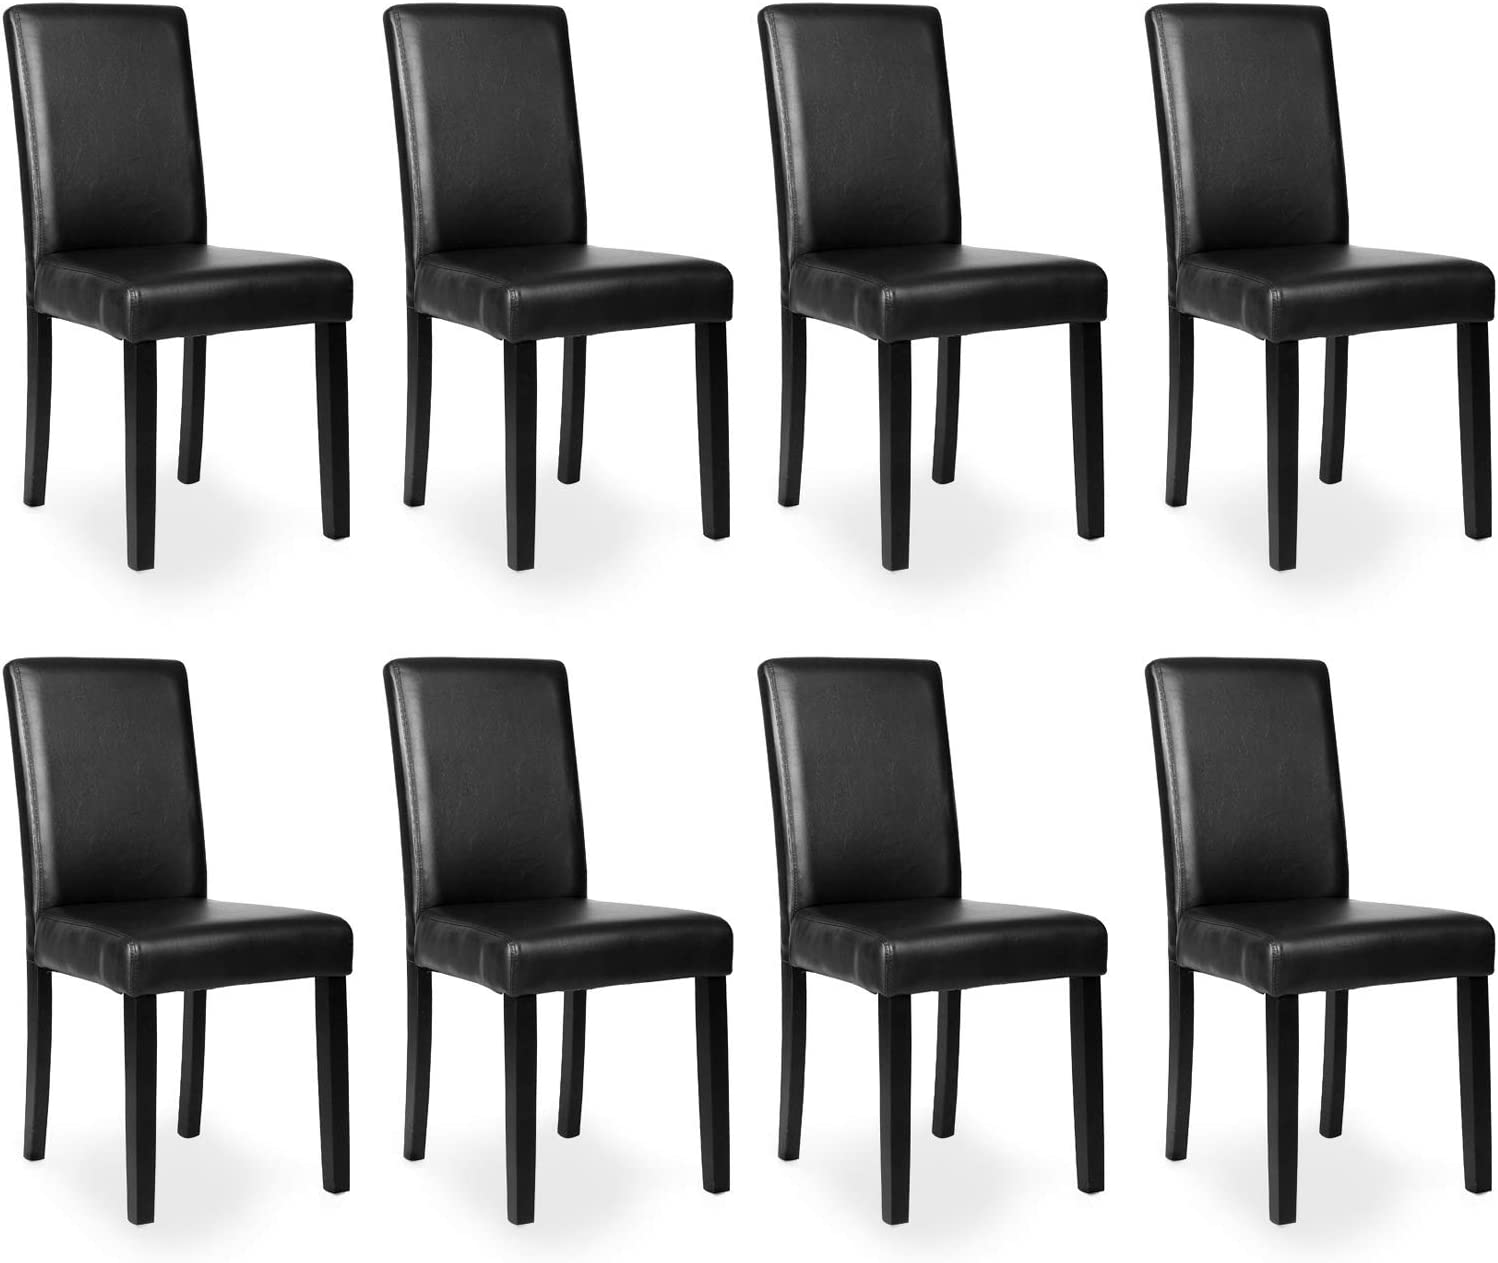 Amazon Com Mecor Dining Chairs Set Of 8 Kitchen Leather Padded Chair With Solid Wood Legs Dining Room Furniture Black8 Chairs